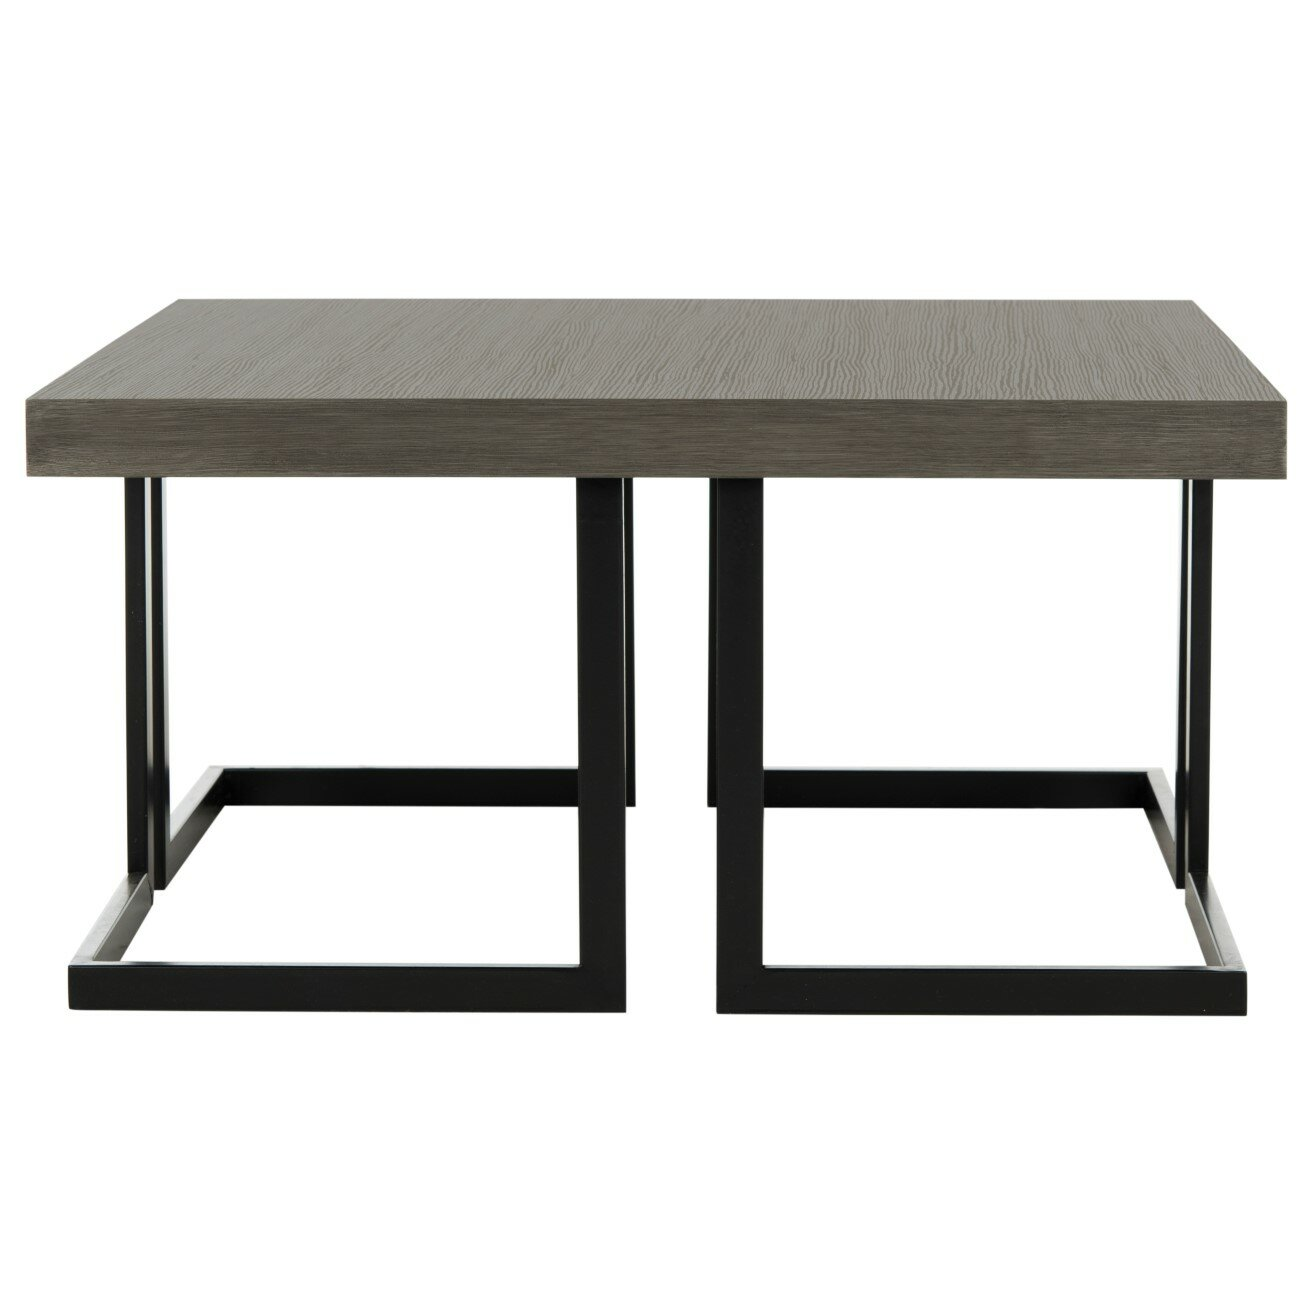 Trent Austin Design American Canyon Coffee Table